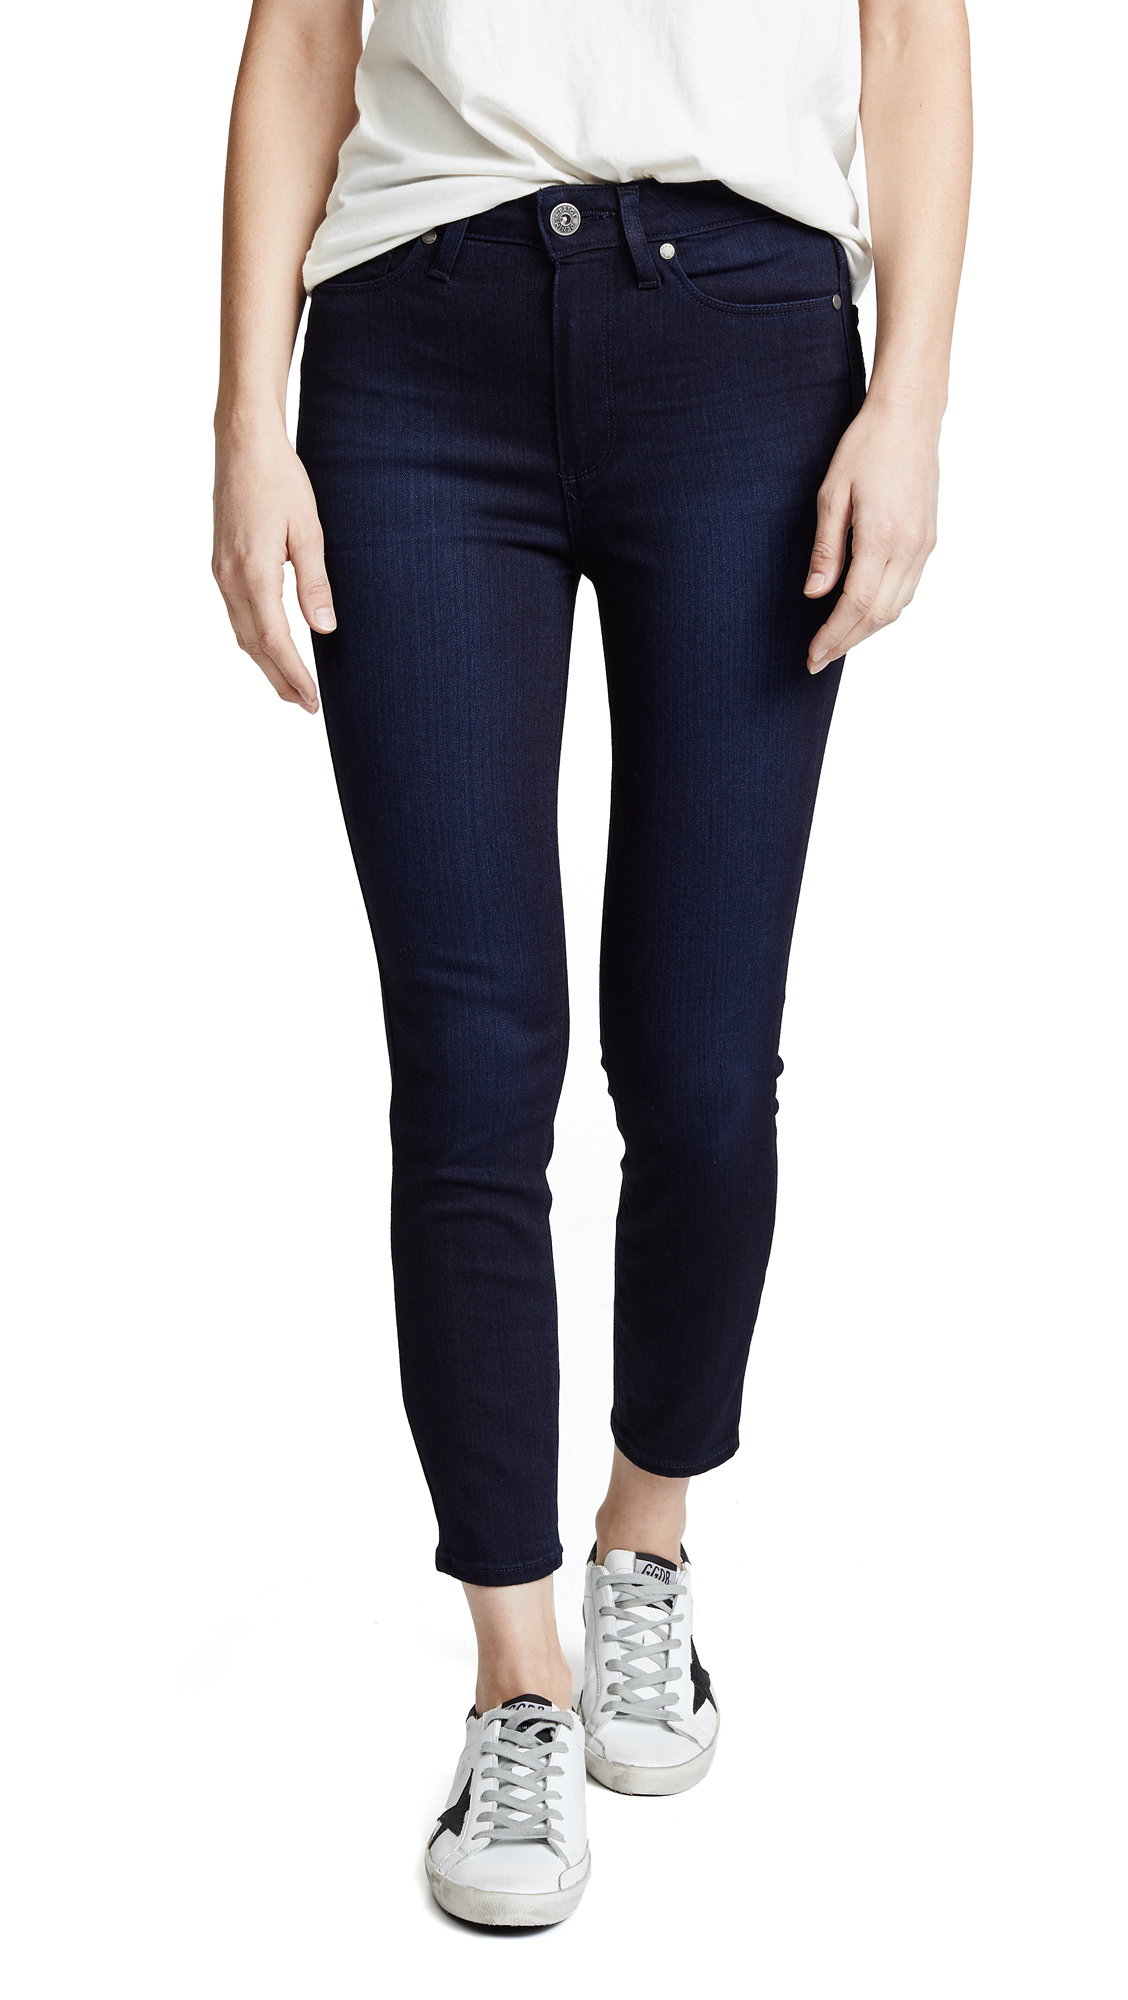 PAIGE Margot High Rise Crop Skinny Jeans In Lana